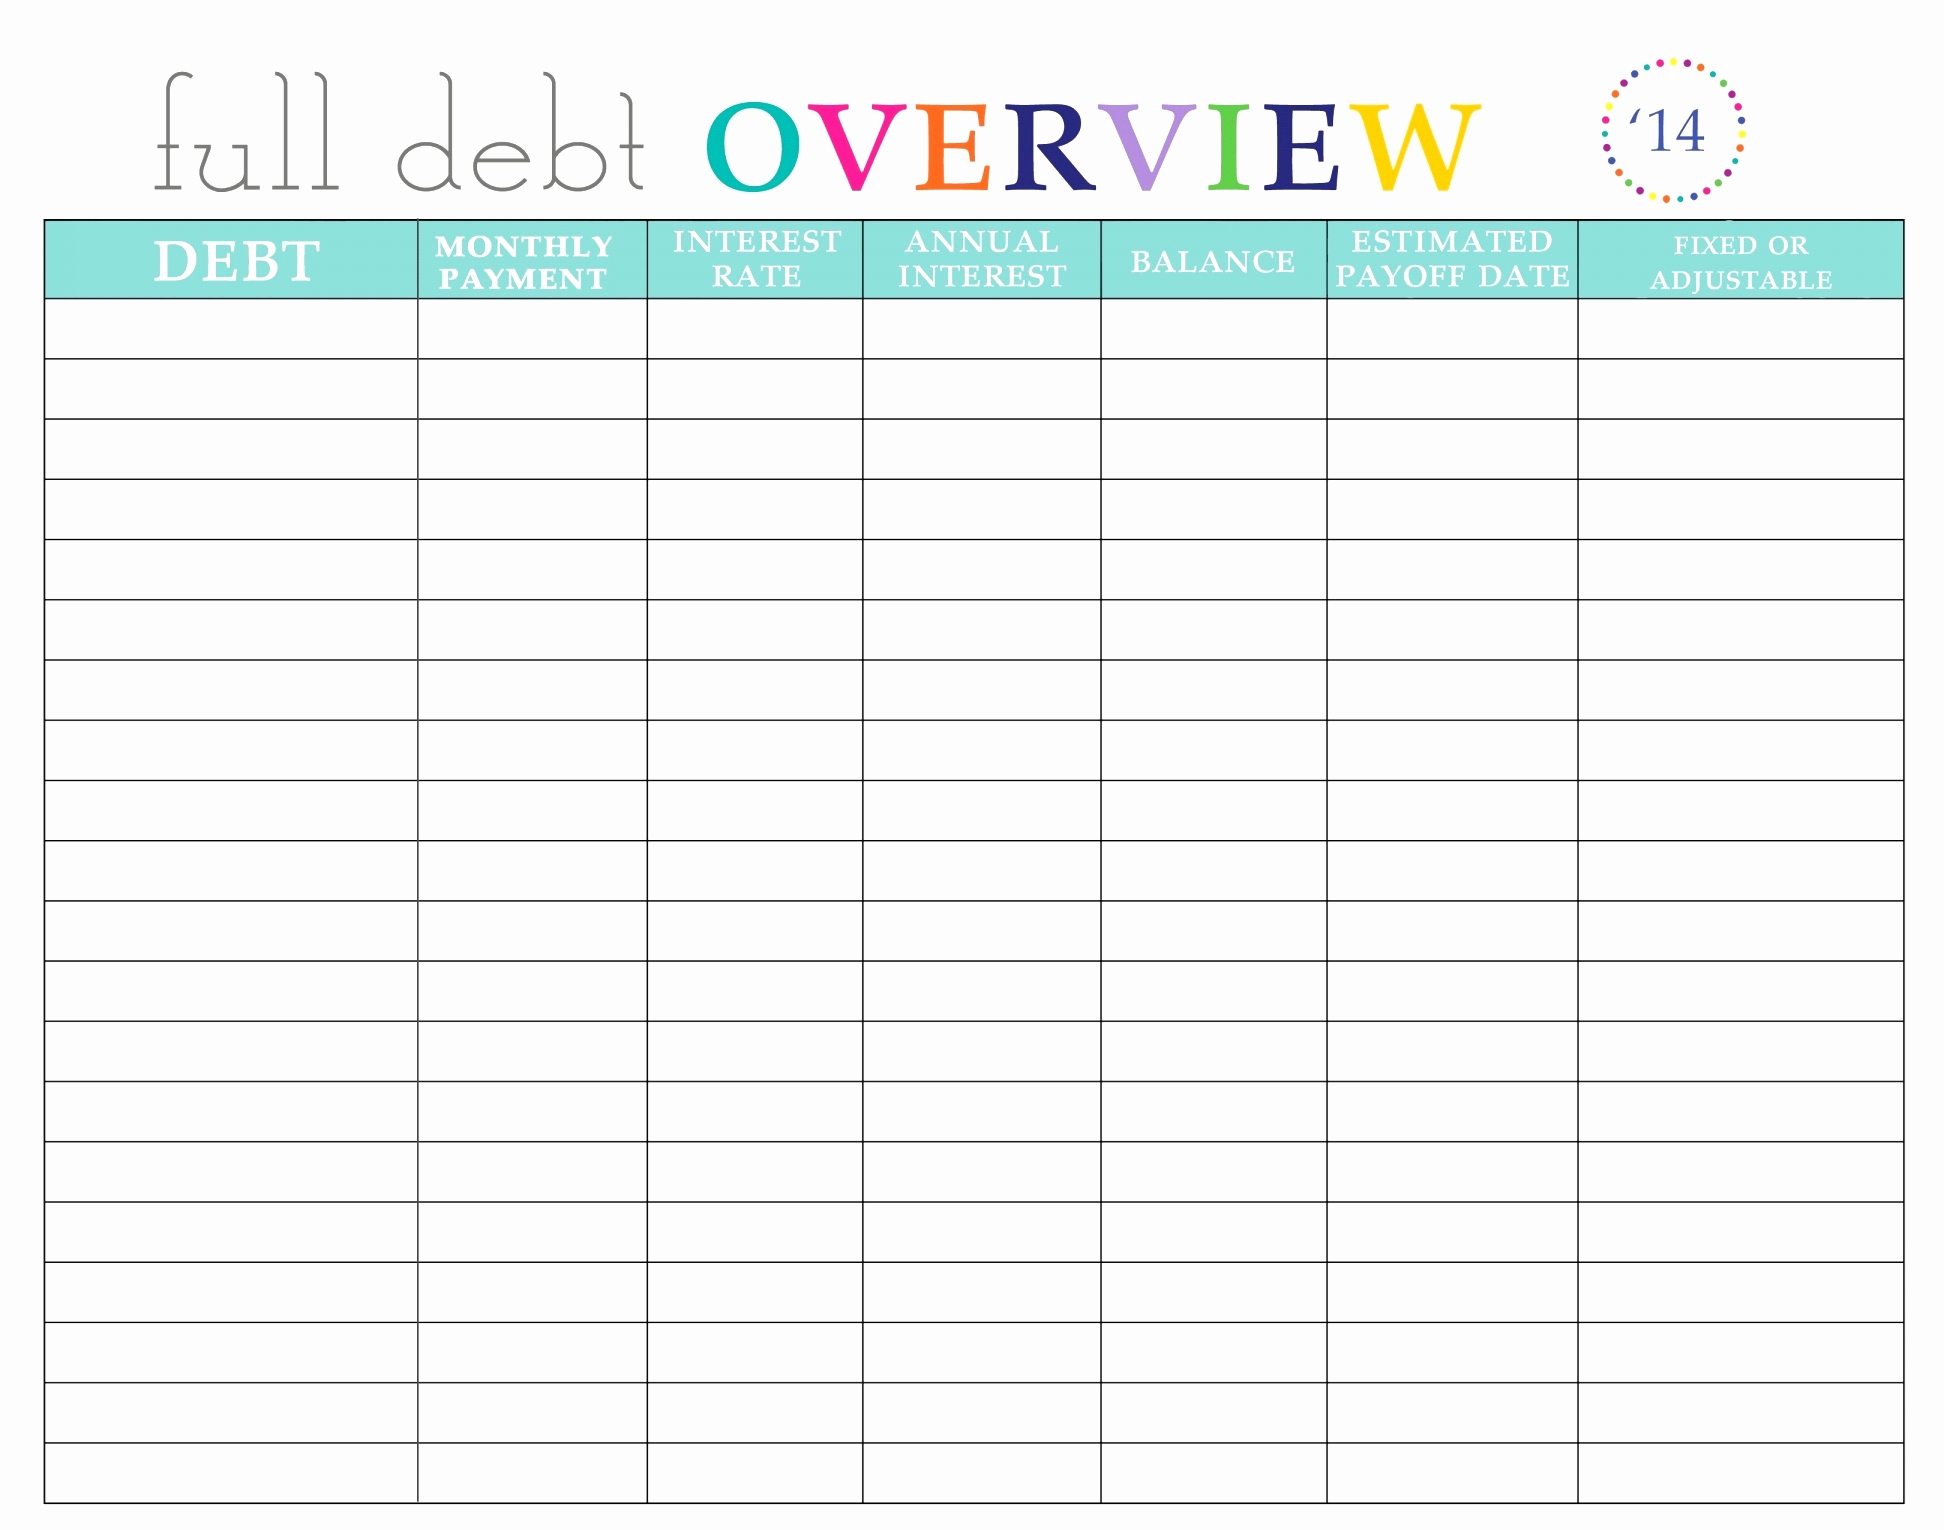 Annual Budget Spreadsheet Intended For New Spreadsheet Software With Debt Snowball Spreadsheet Budget